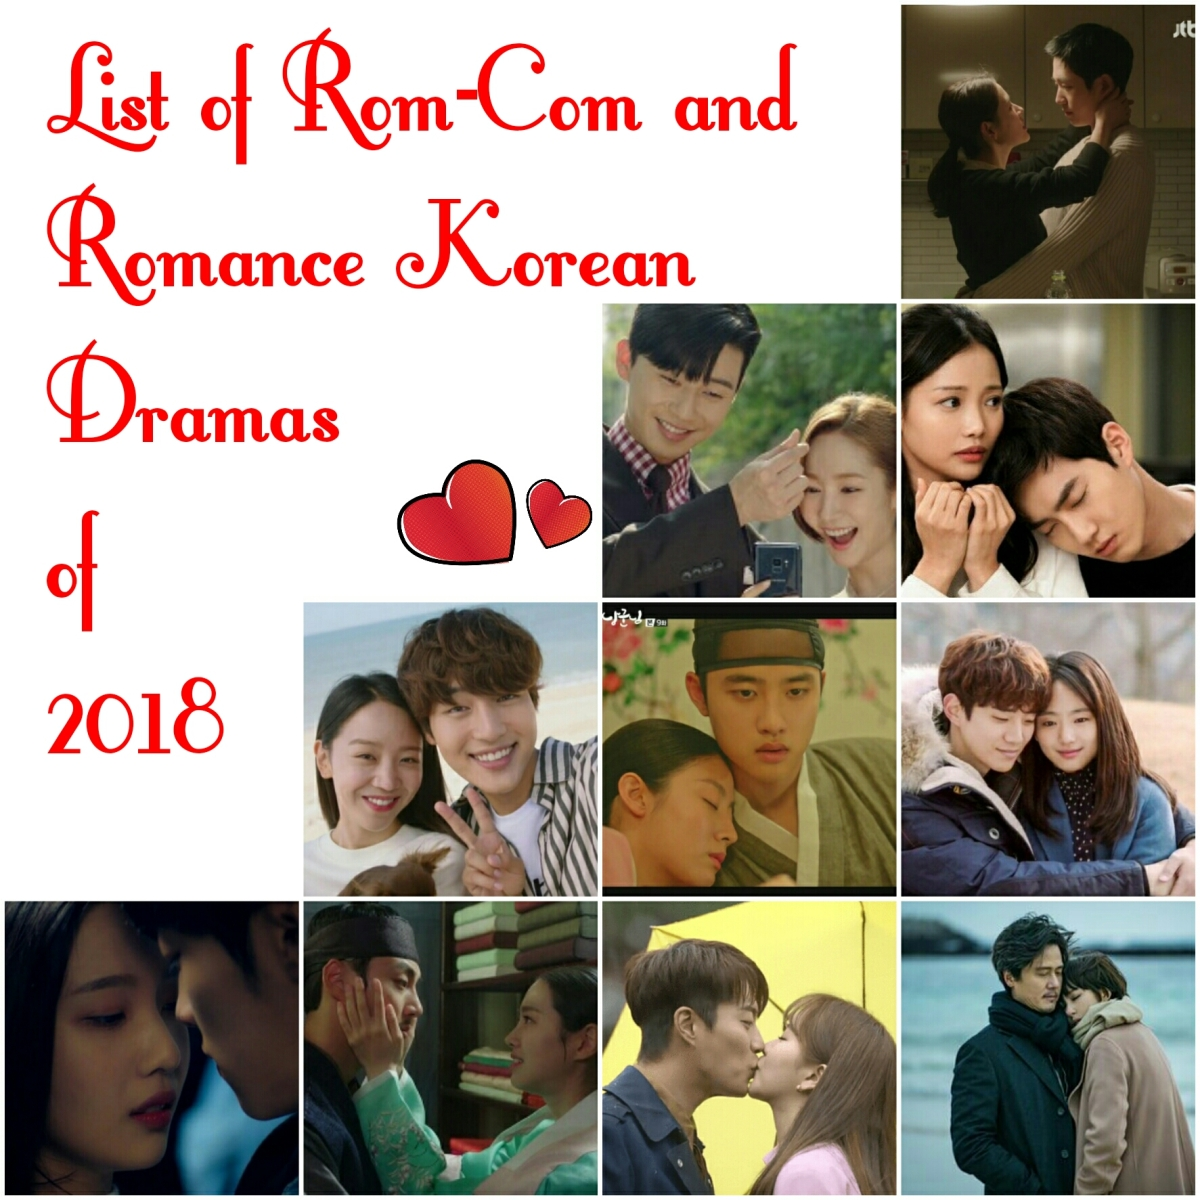 (53) List of Romantic Comedy and Romance Kdramas of 2018